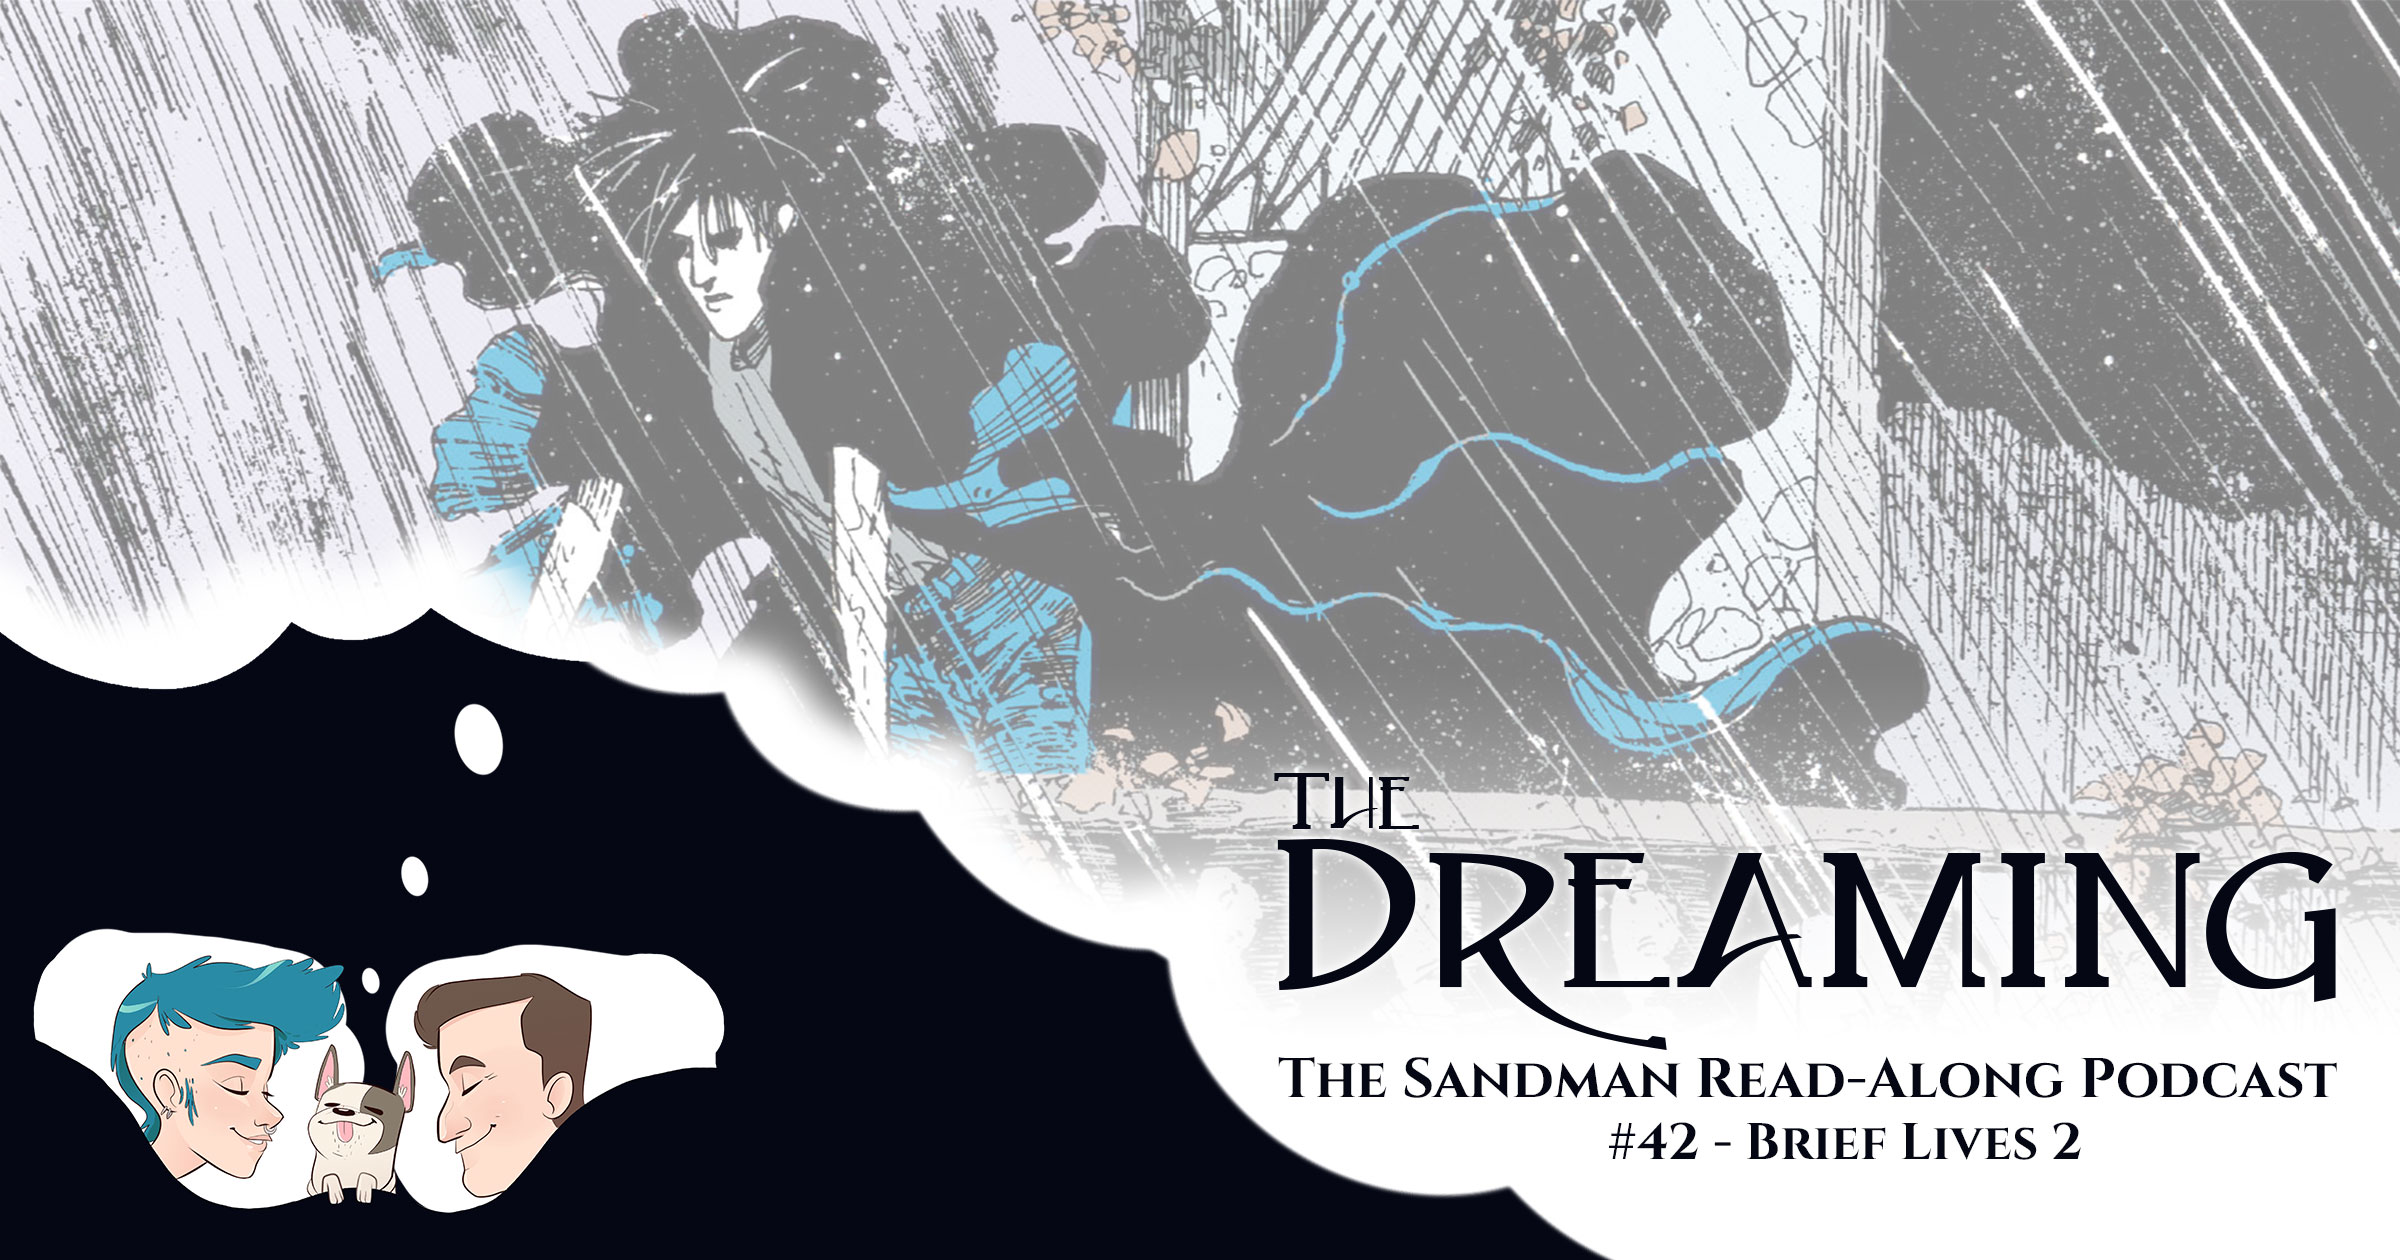 thedreaming-45-sandman42-titlecard